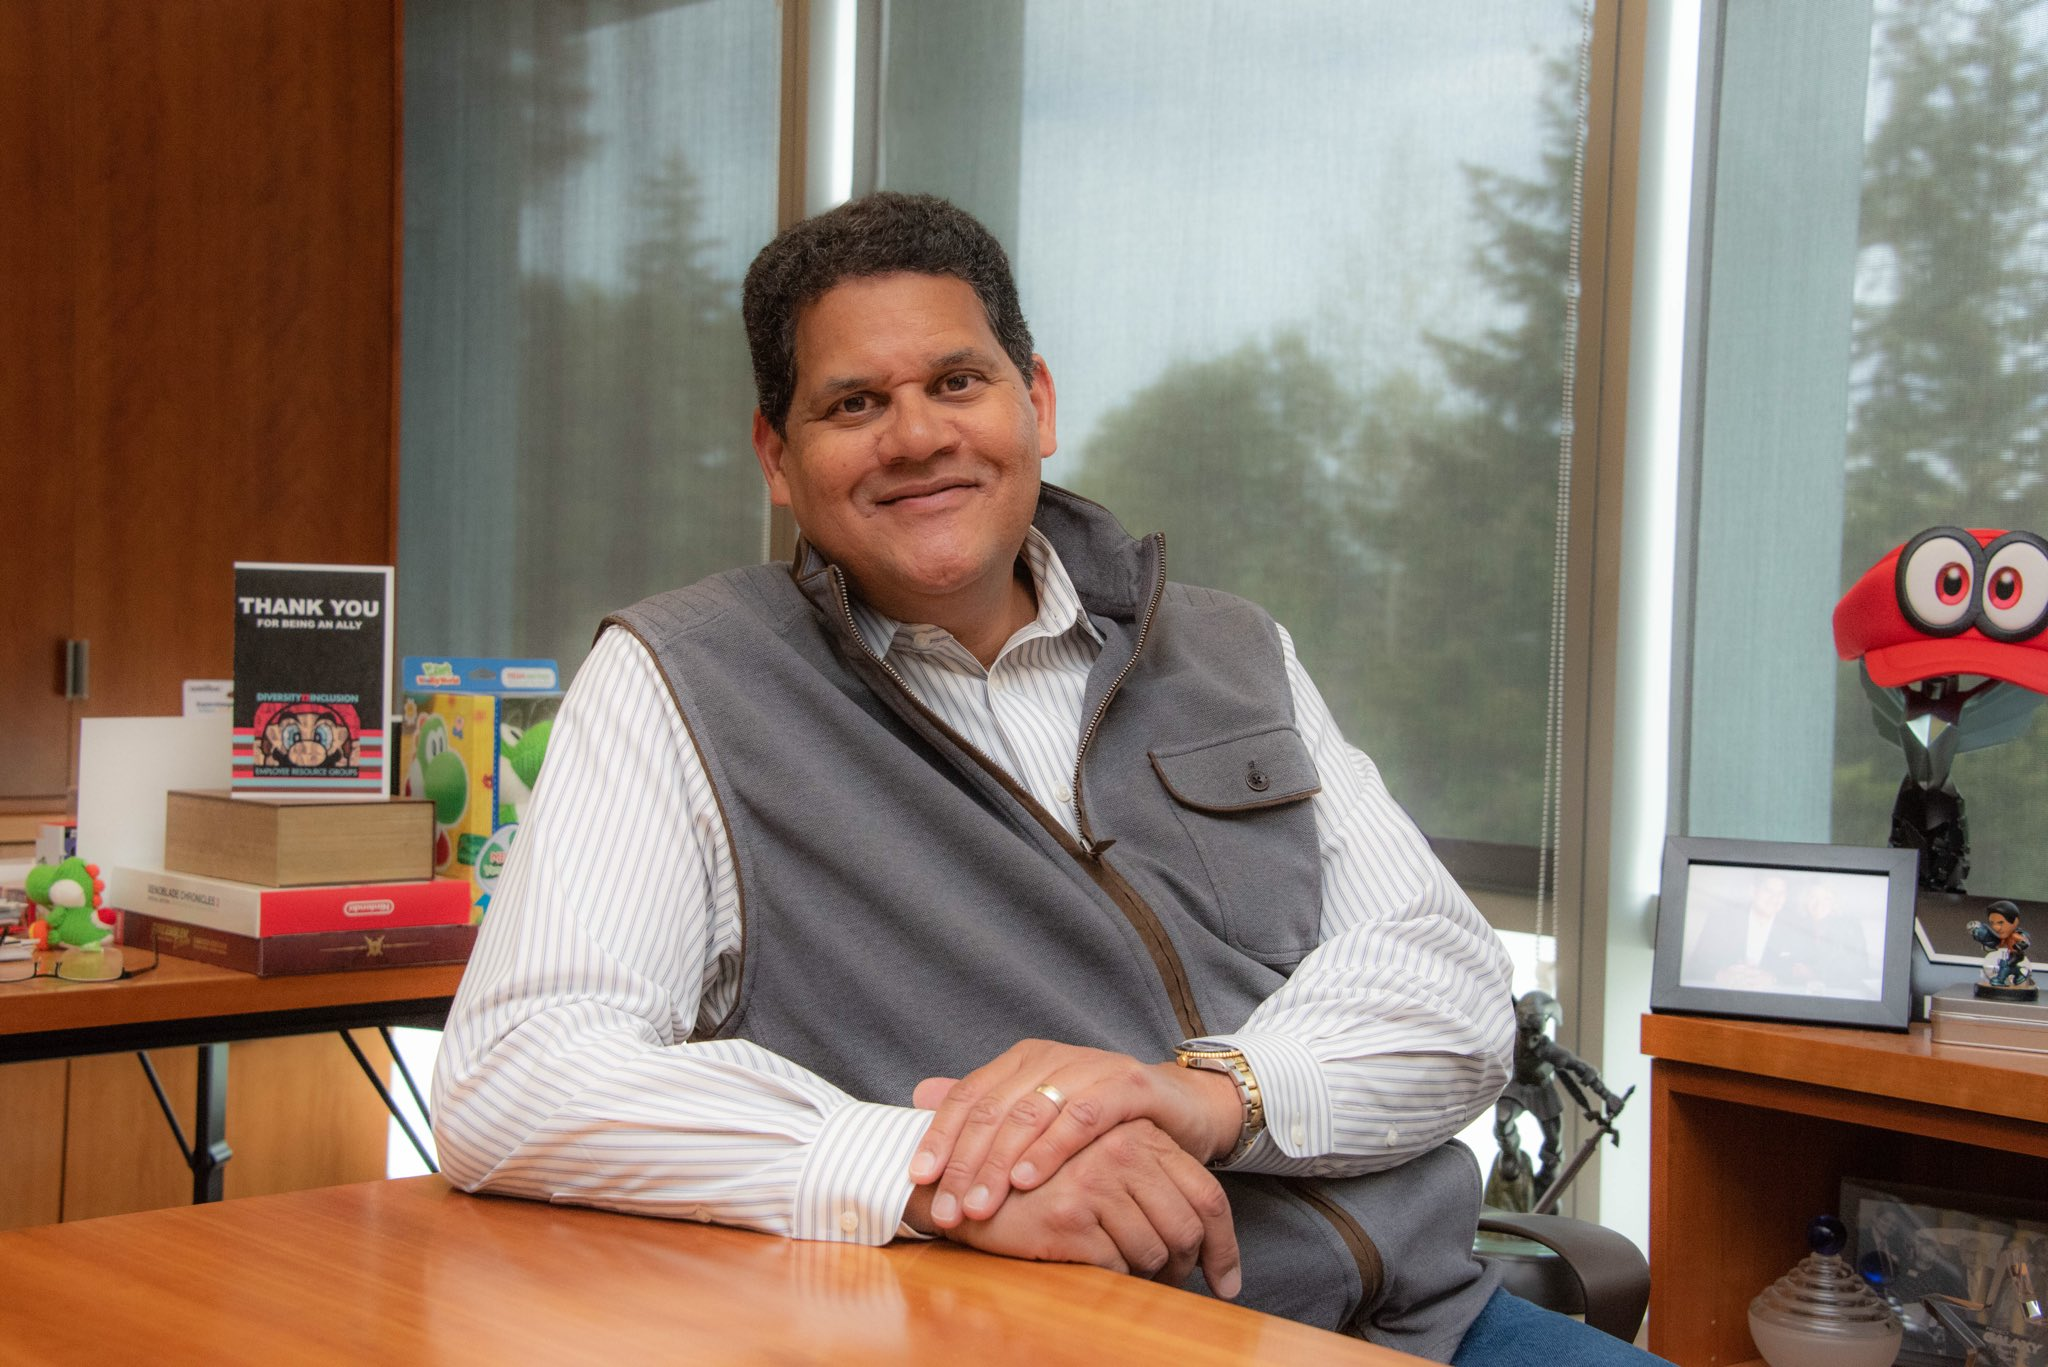 Reggie Fils-Aime sitting at his desk, smiling. There is Nintendo paraphernalia on the shelves behind him.